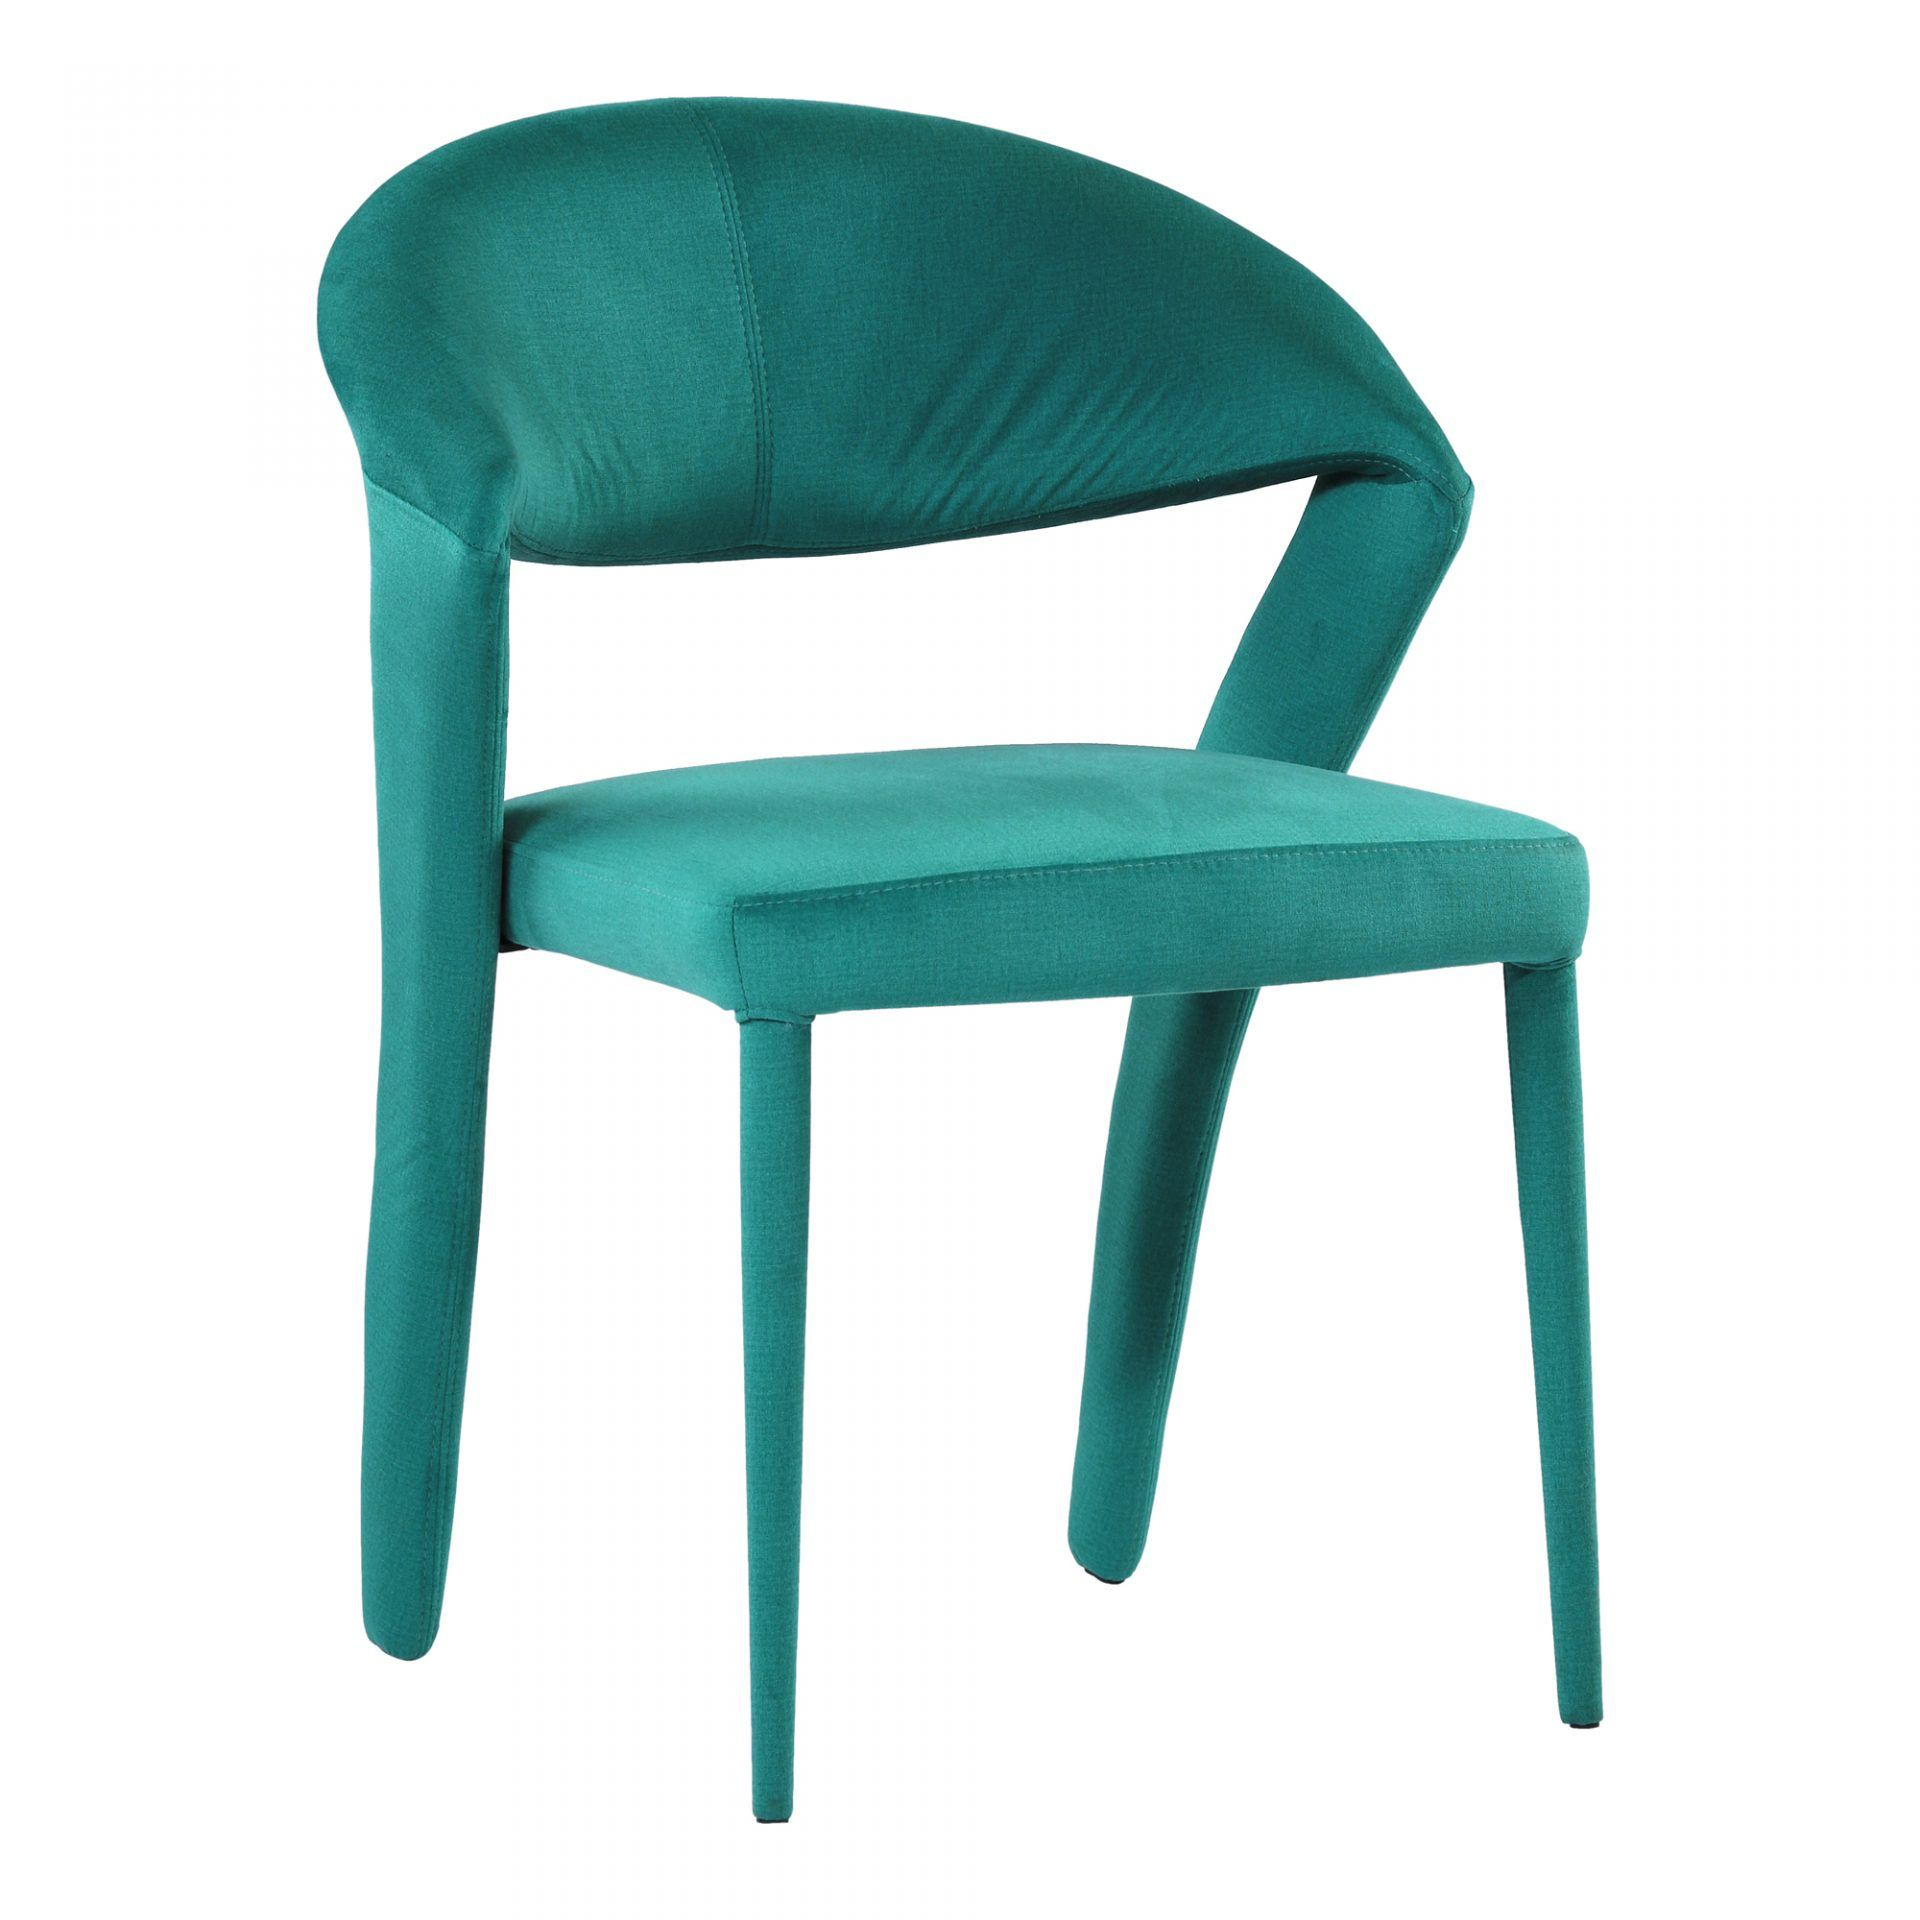 Lennox Dining Chair Green M2 Dining Chairs Moe S Wholesale Dining Chairs Moe S Home Collection Green Accent Chair